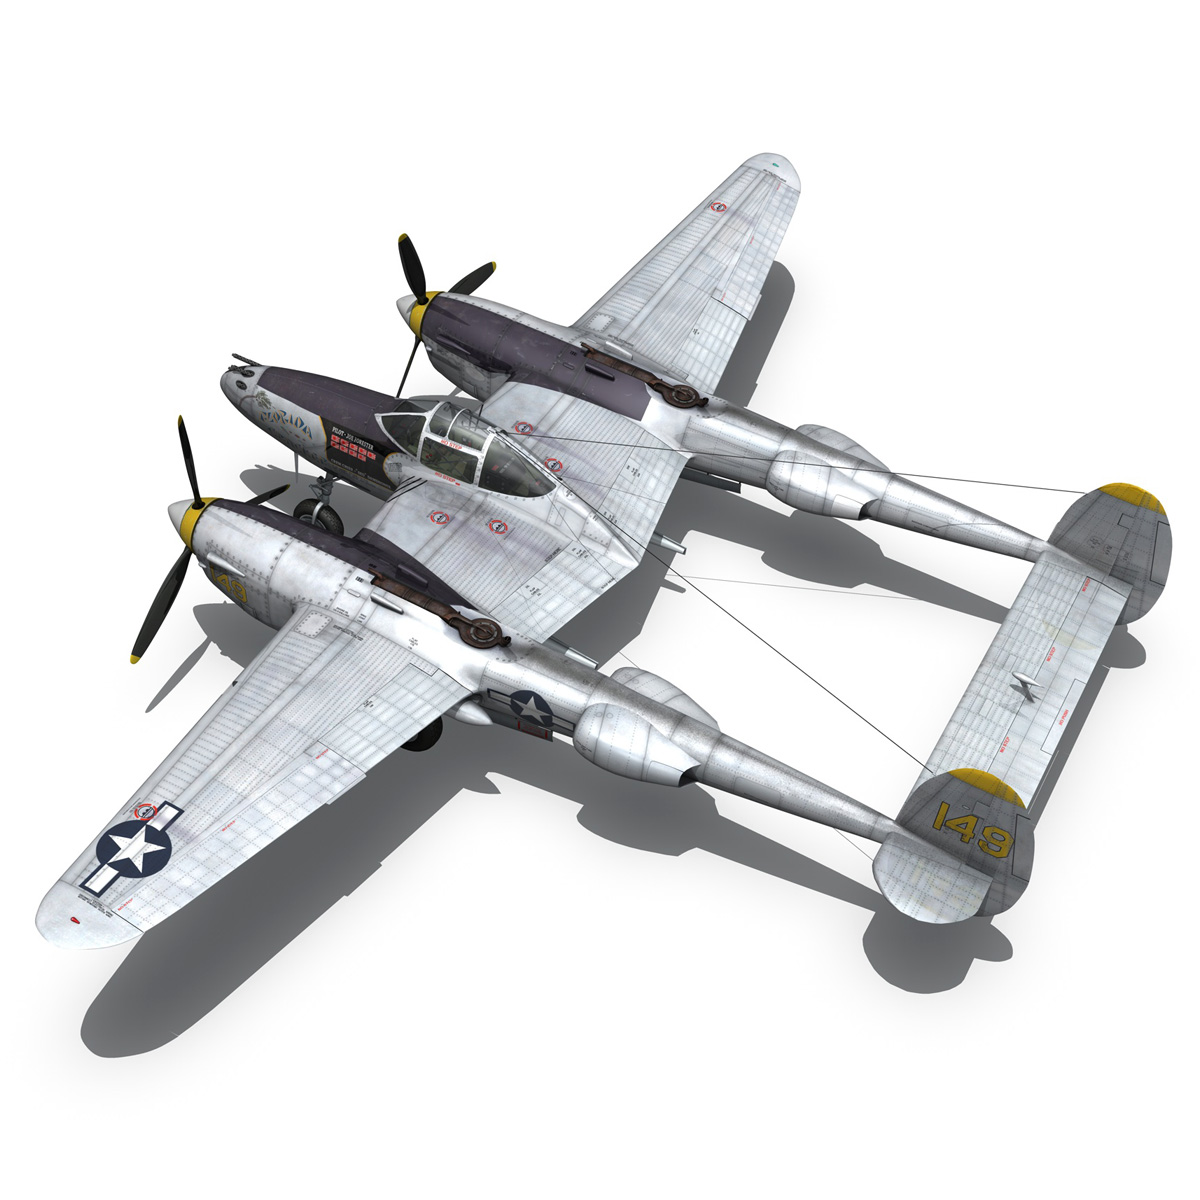 lockheed p-38 lightning – florida cracker 3d model fbx c4d lwo obj 279425